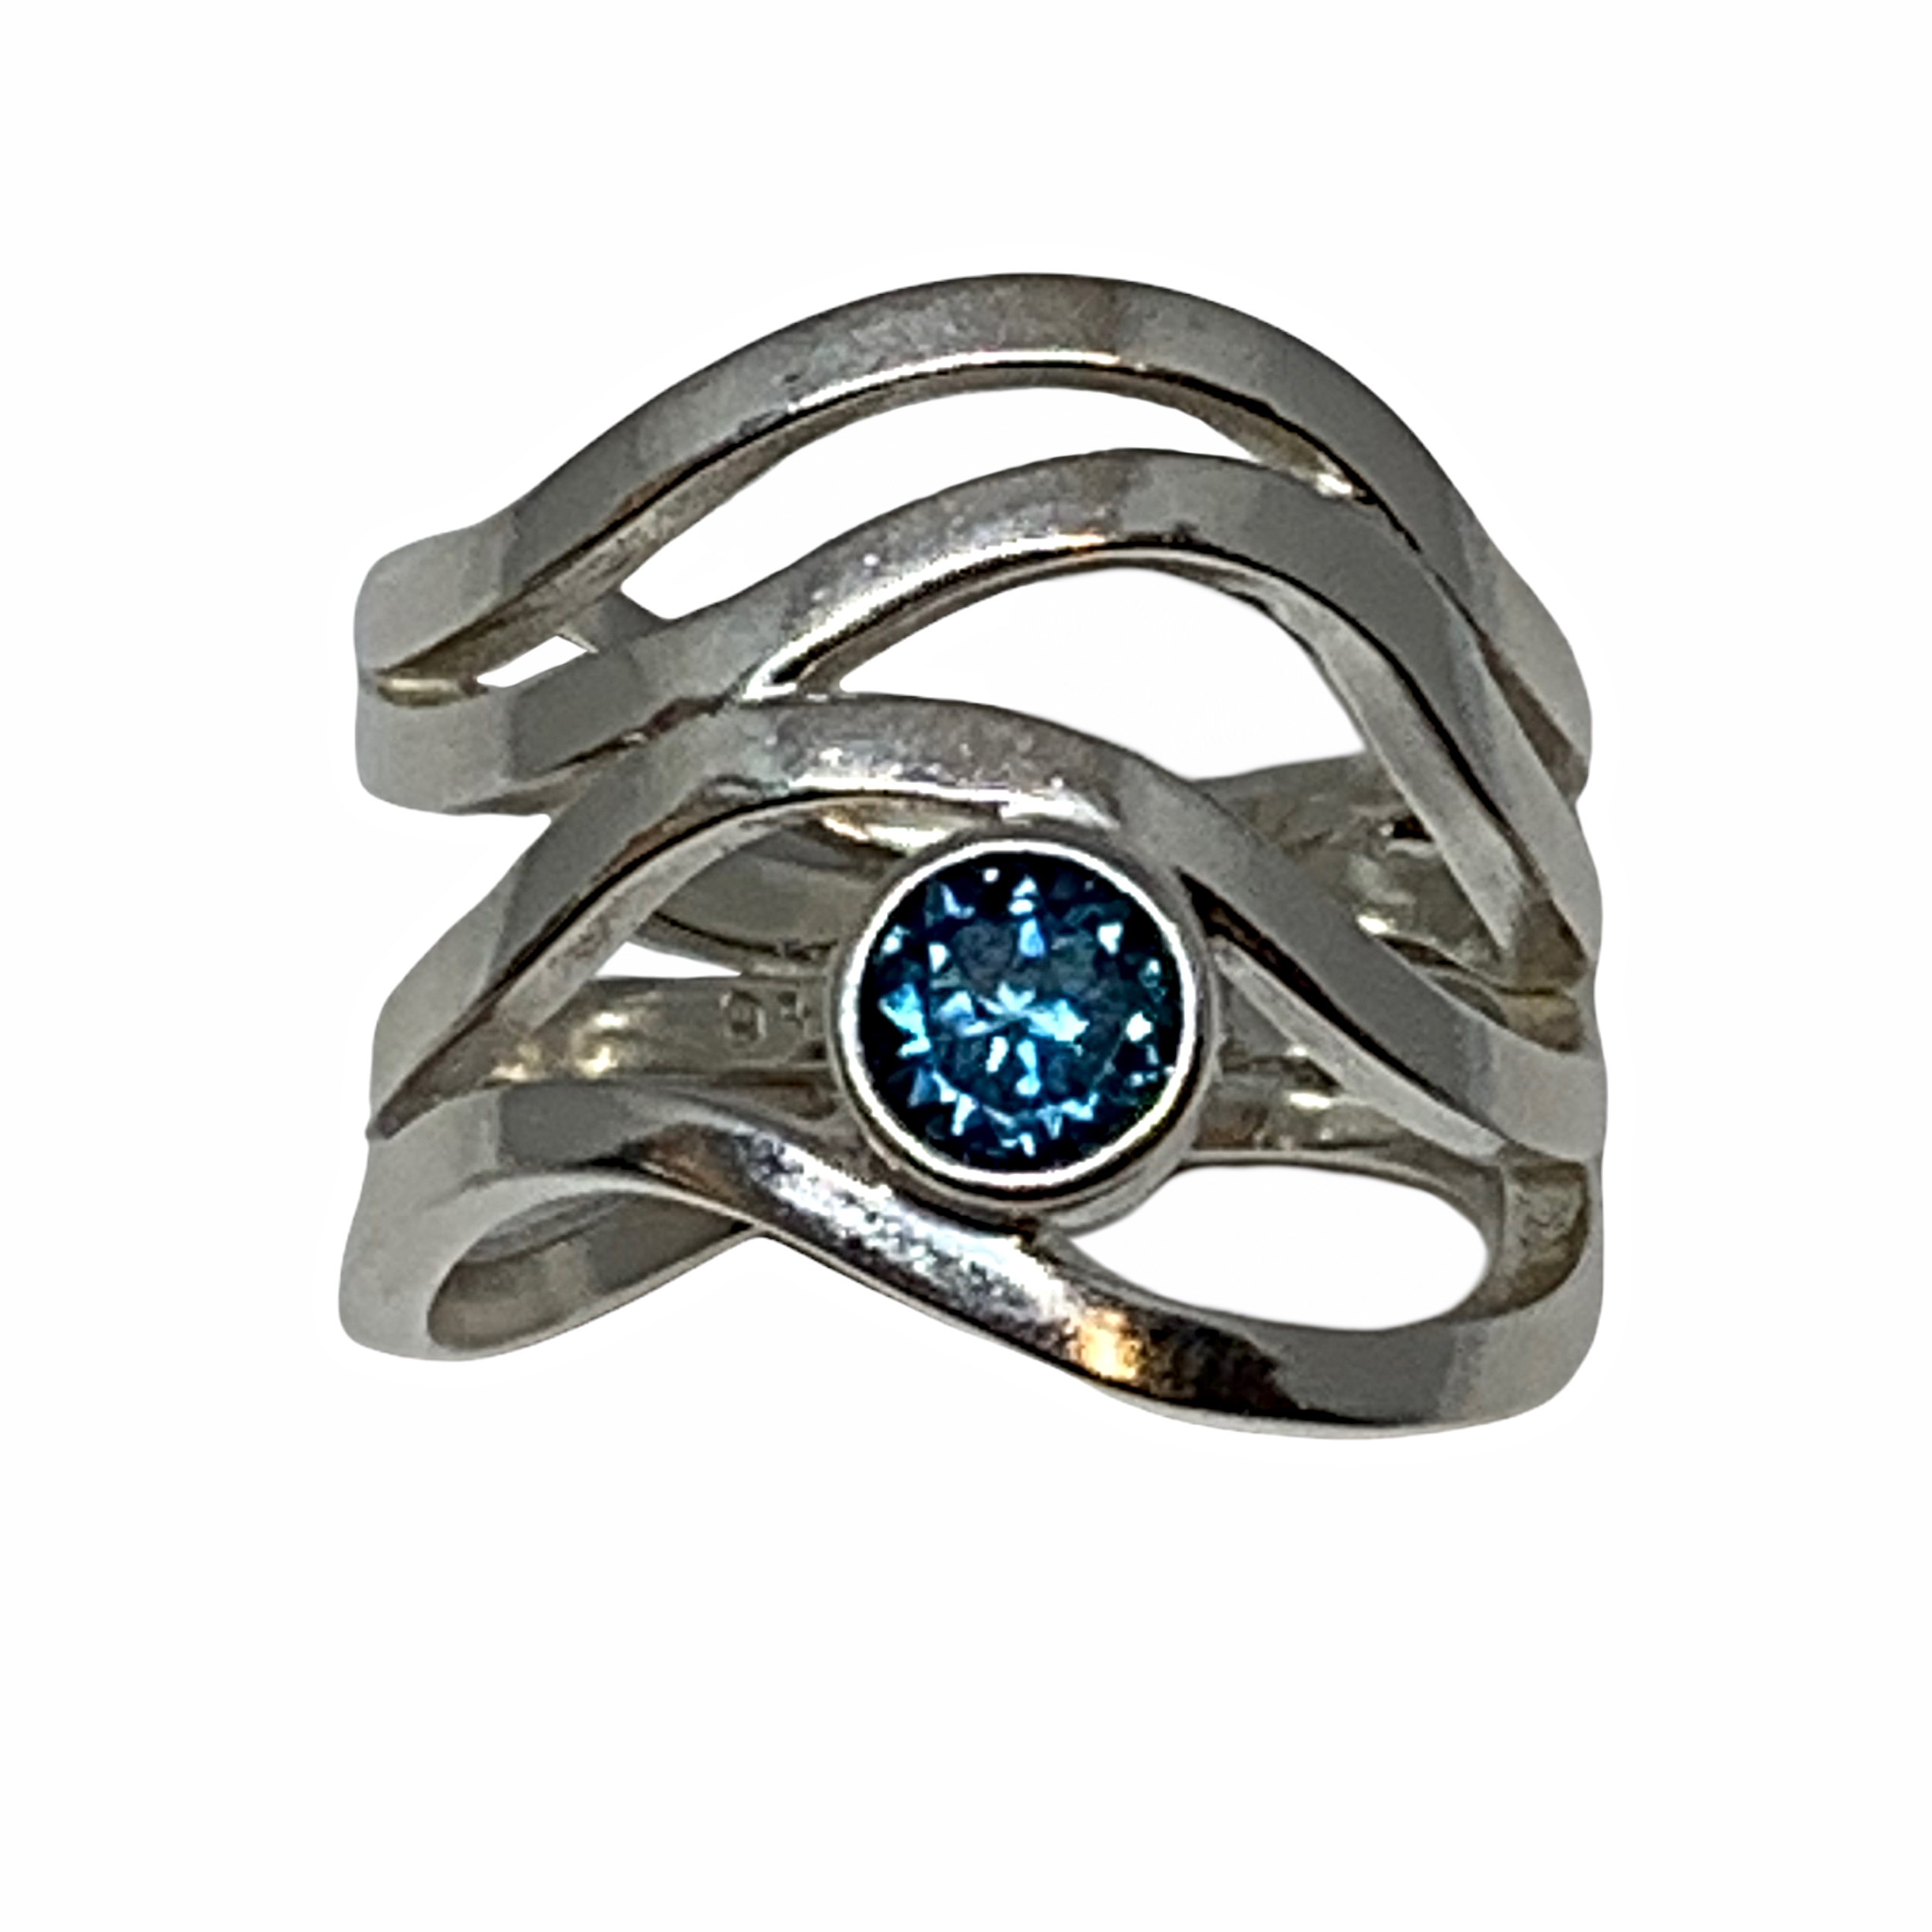 Handmade sterling silver and London blue topaz ring by A&R Jewellery   Effusion Art Gallery + Cast Glass Studio, Invermere BC